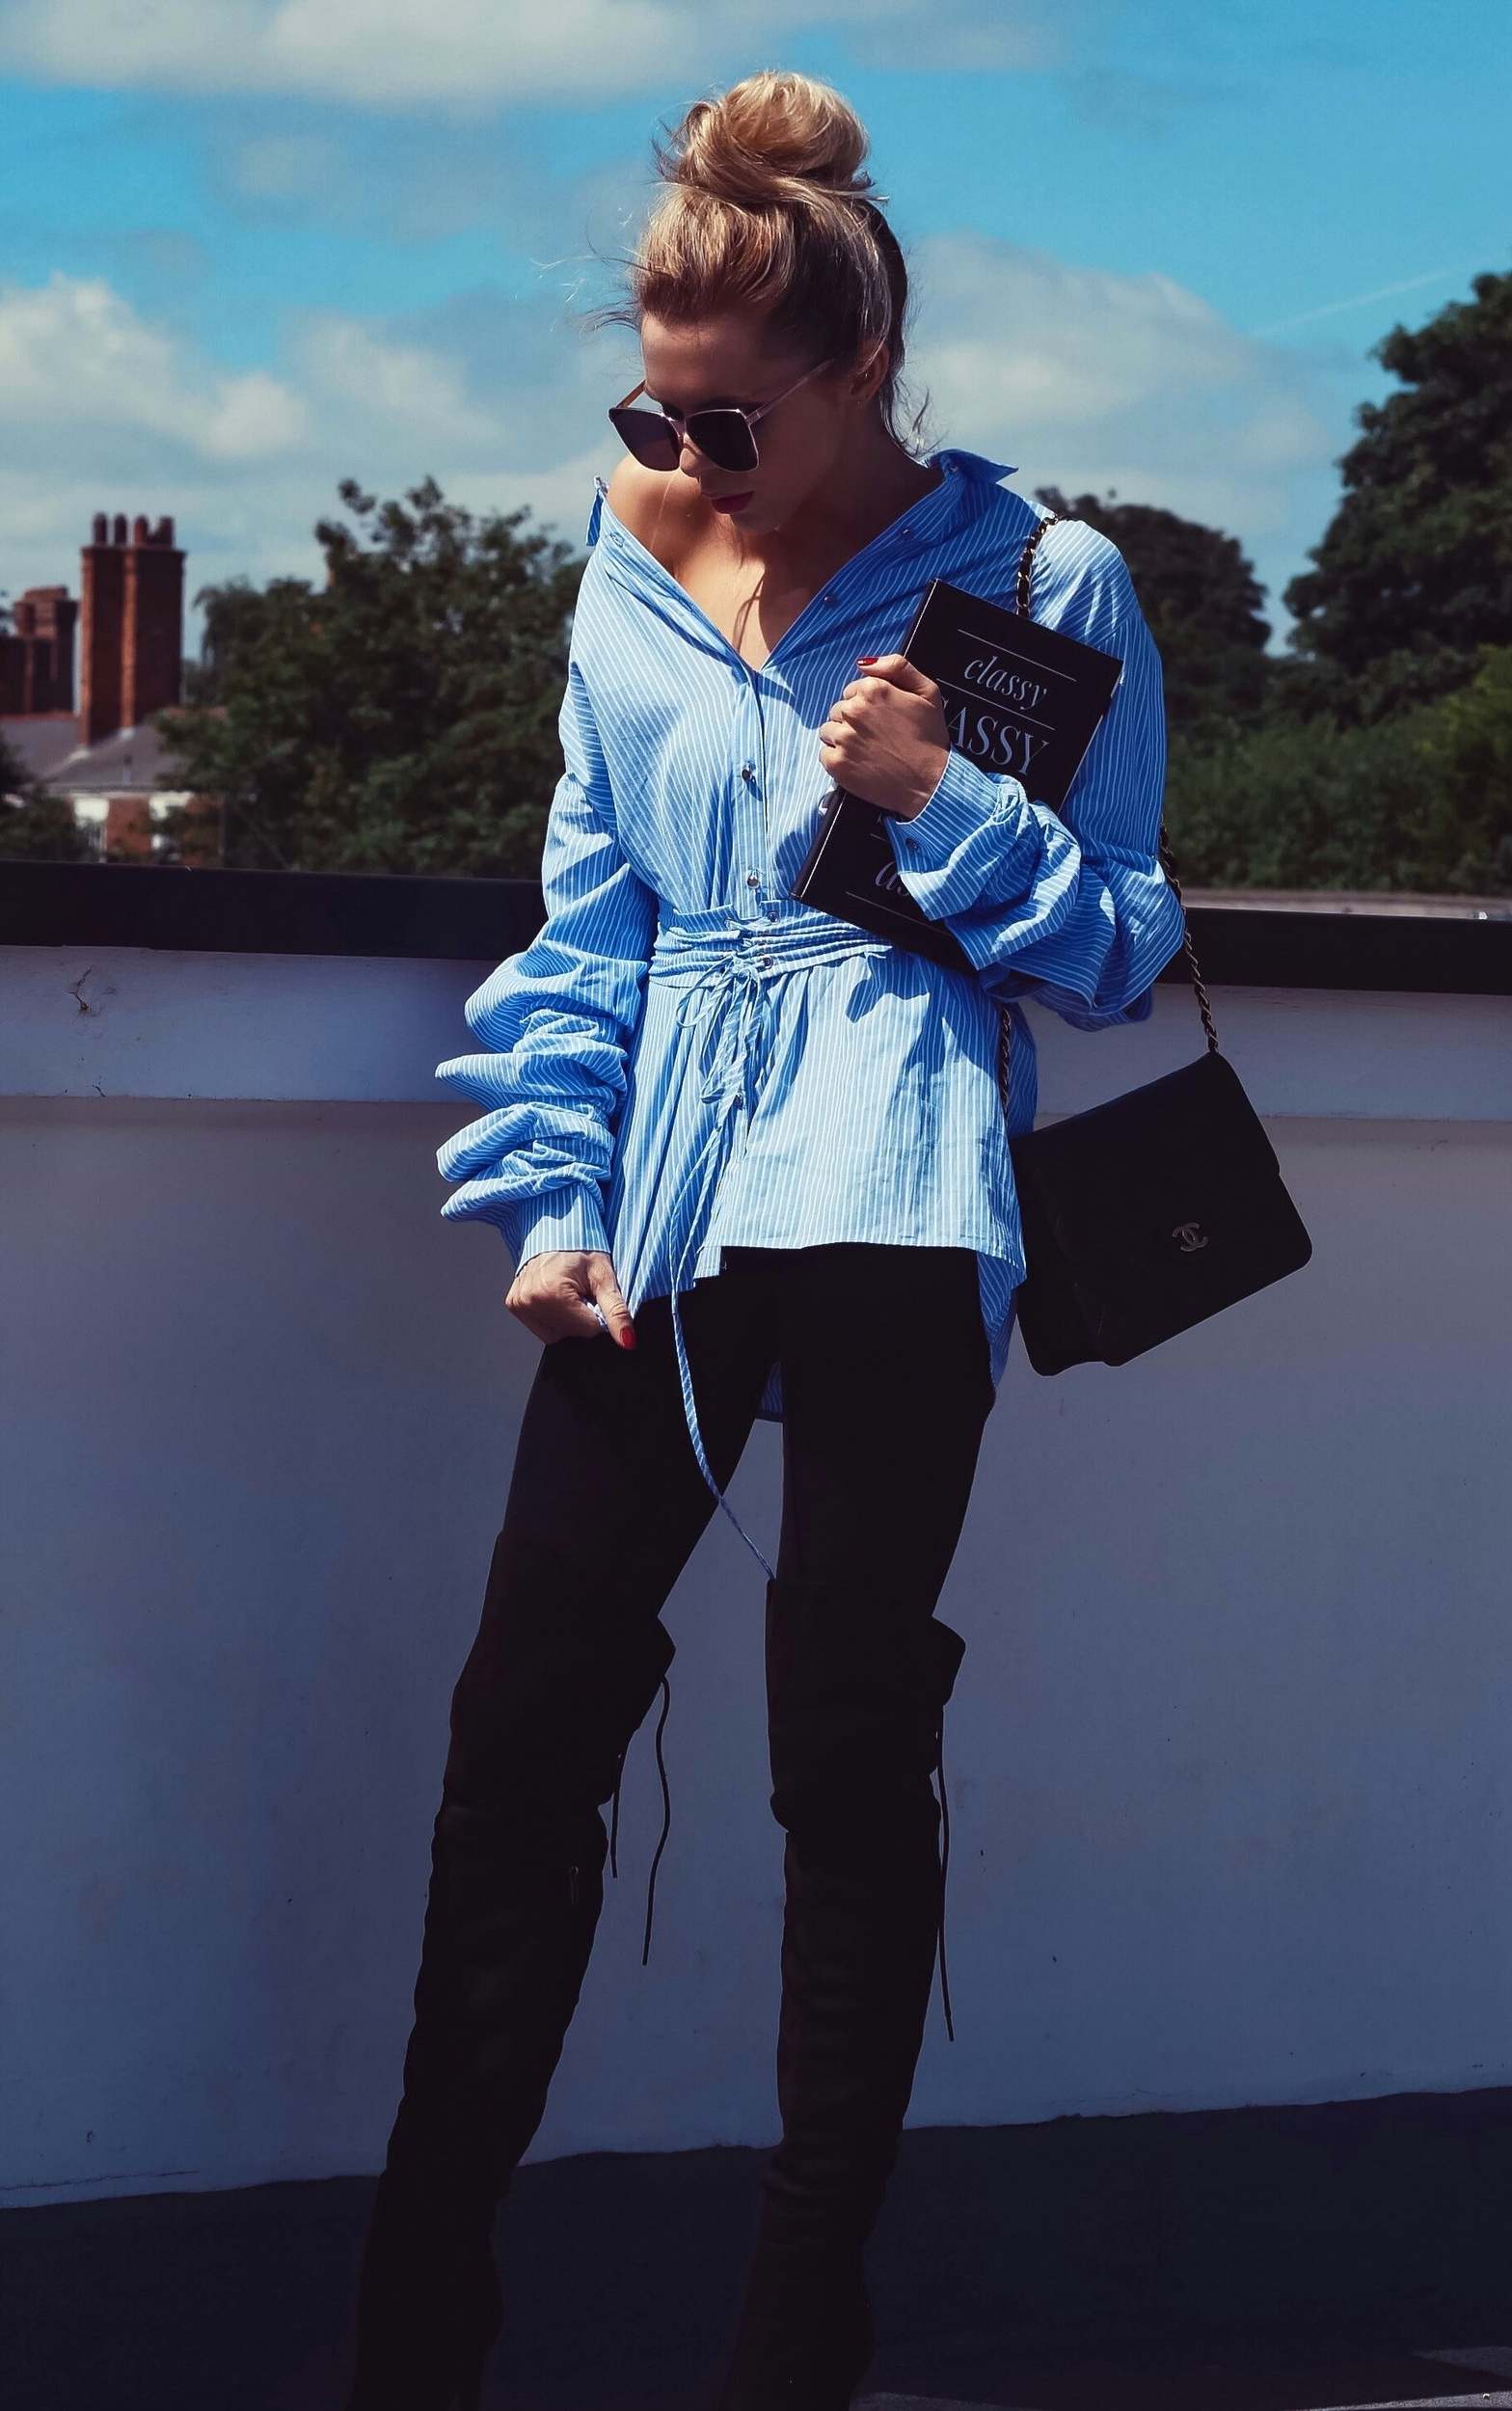 haul, affordable fashion, streetstyle, inspiration, what to wear, fashion, lookbook, style, fashion blogger, laura blair, youtuber, london fashion girl, PHONE CASE, FASHIONABLE PHONECASE, WORKWEAR, OFFICEWEAR